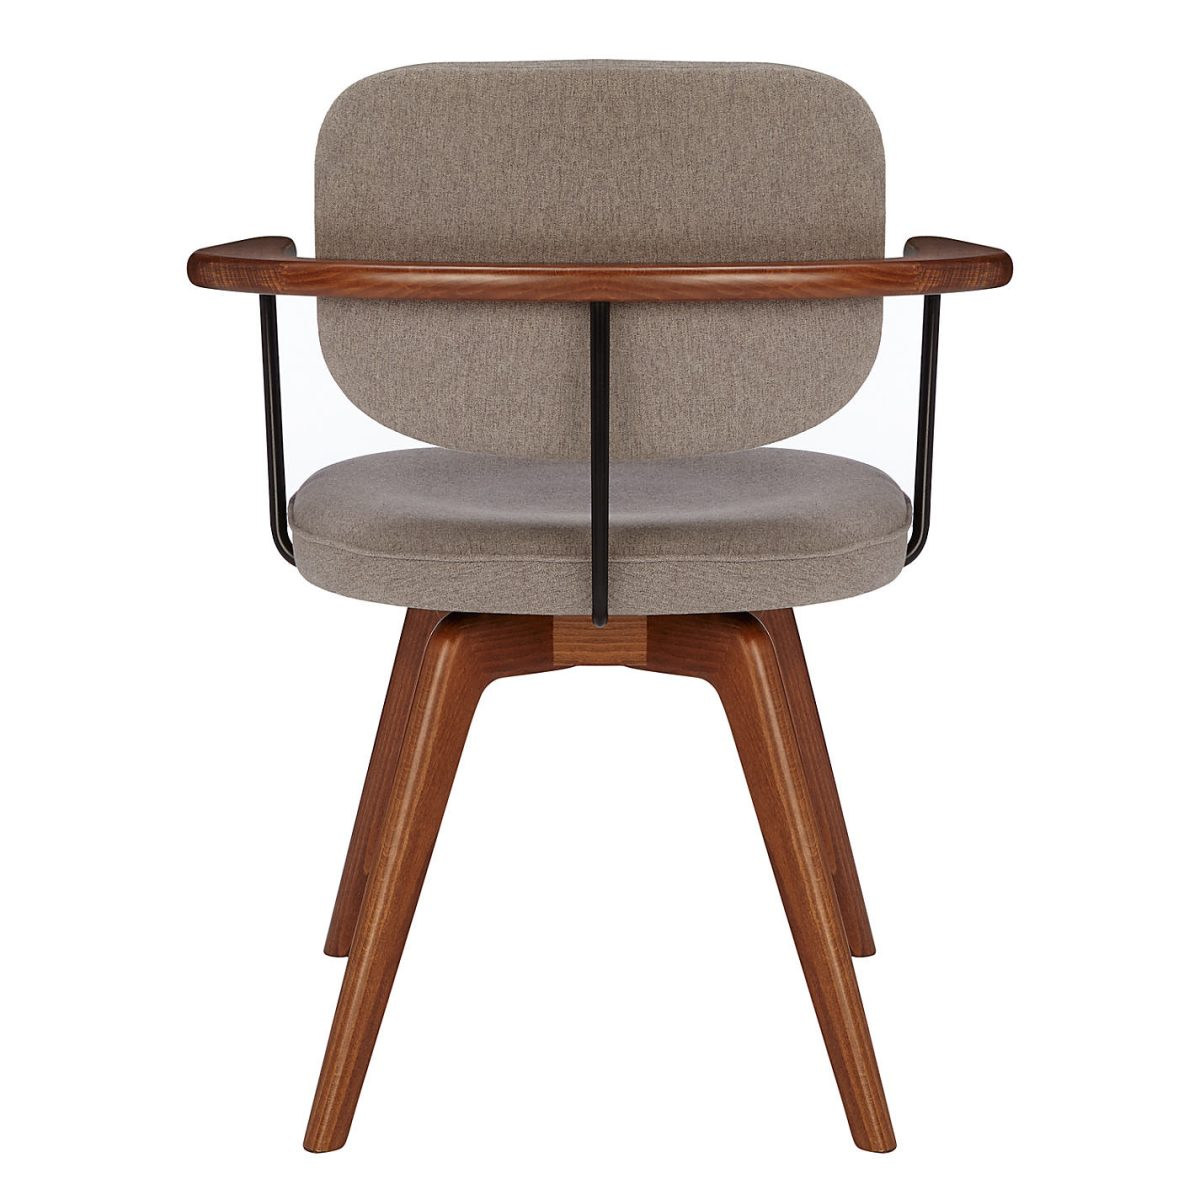 Used ikea chairs October 2020